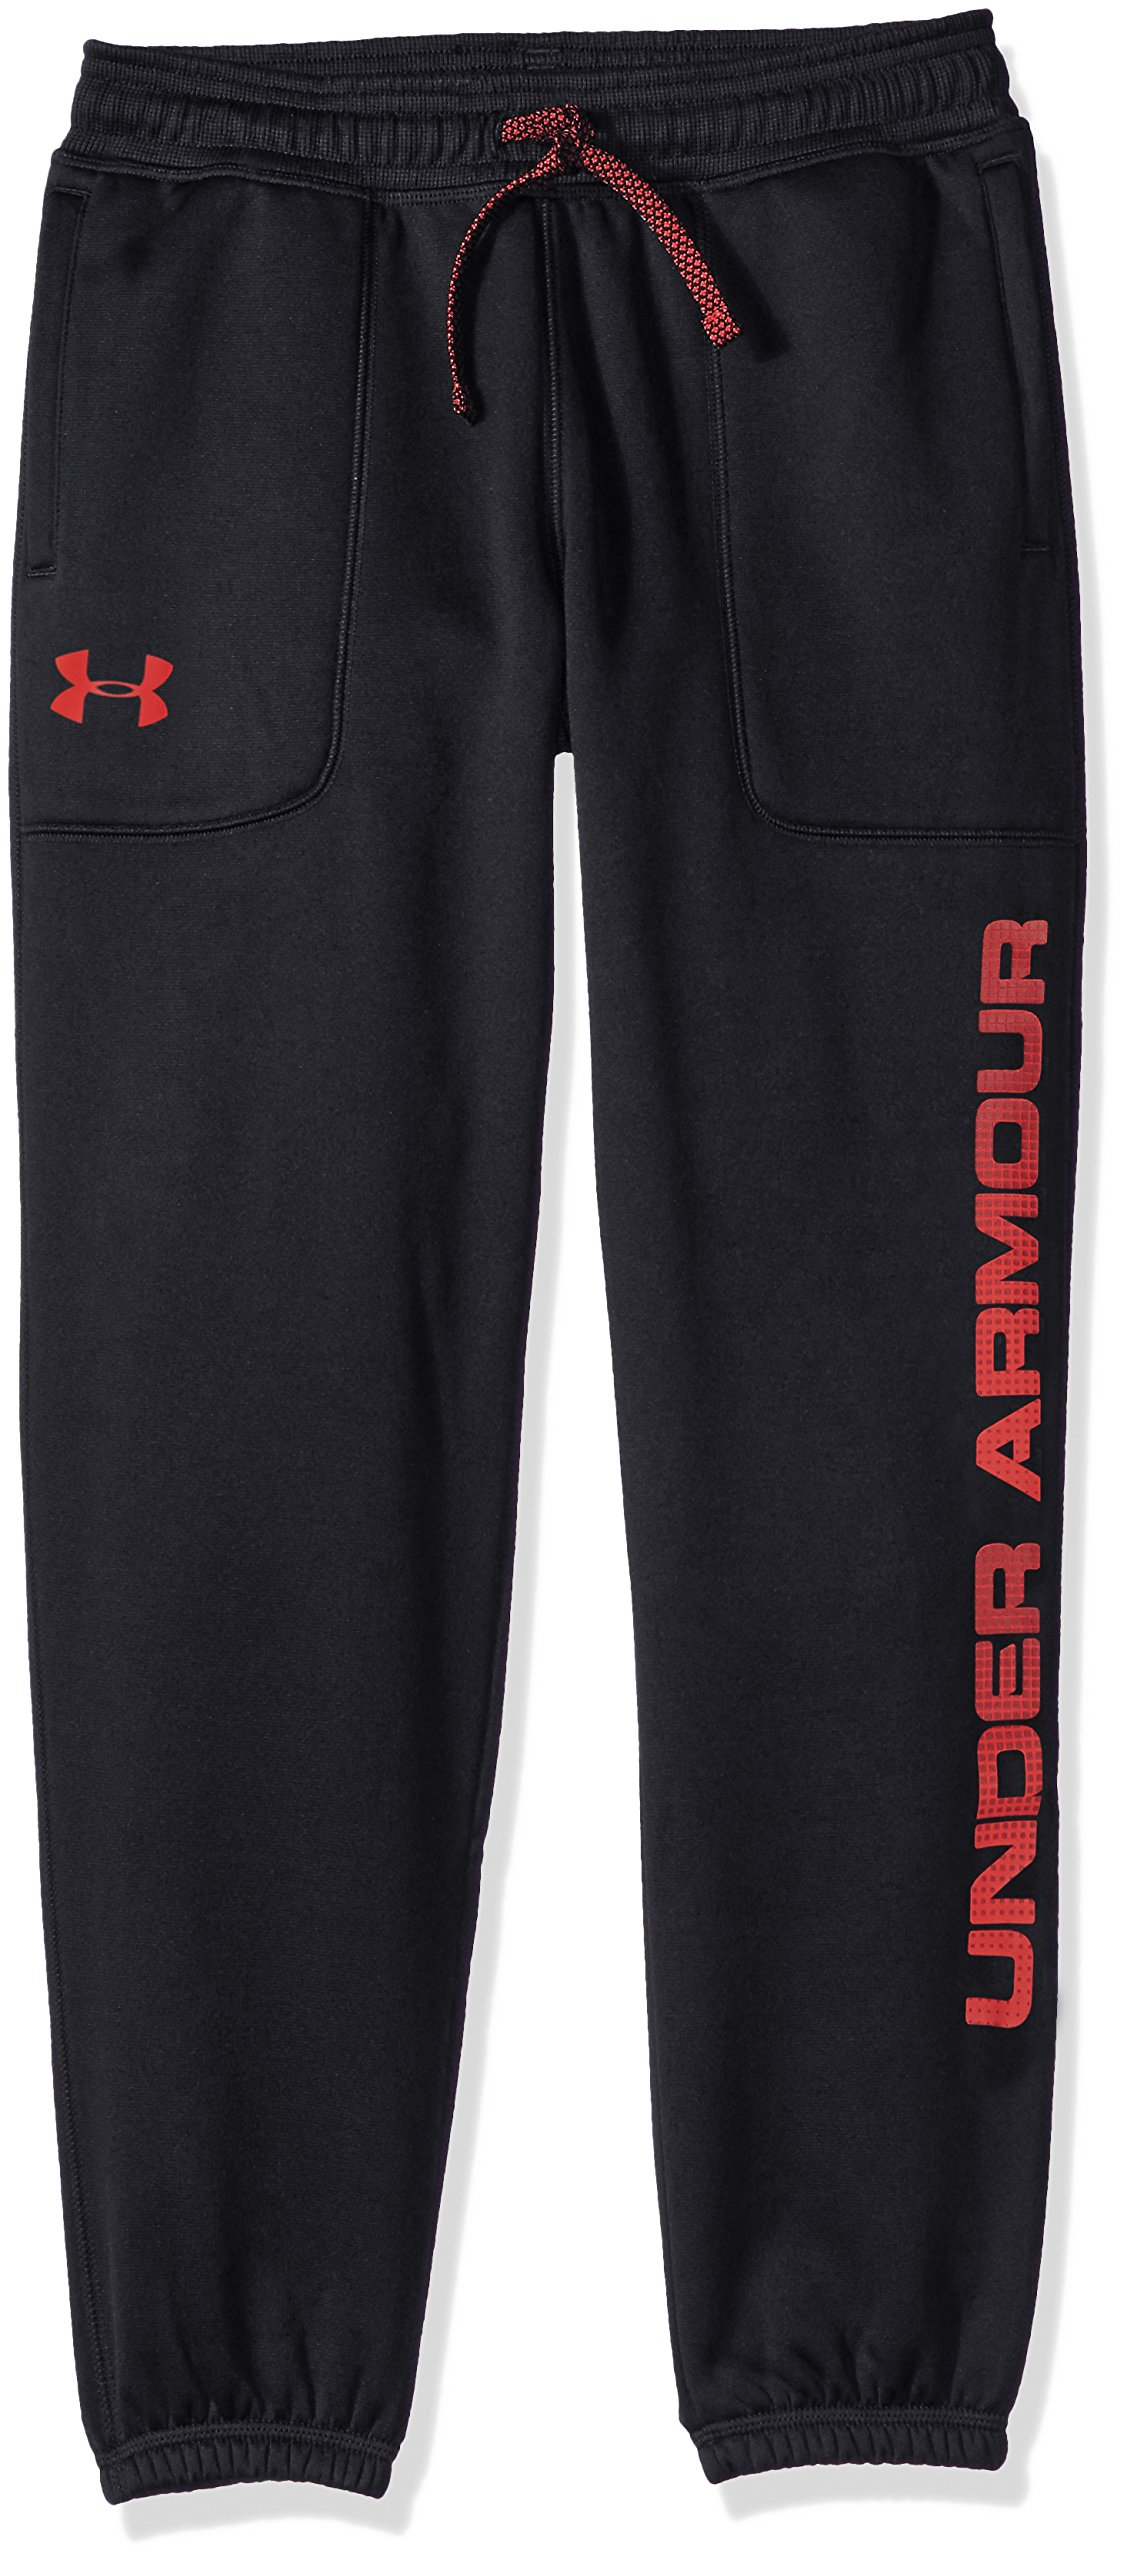 Under Armour Boys' Armour Fleece Branded Joggers,Black /Red, Youth X-Small by Under Armour